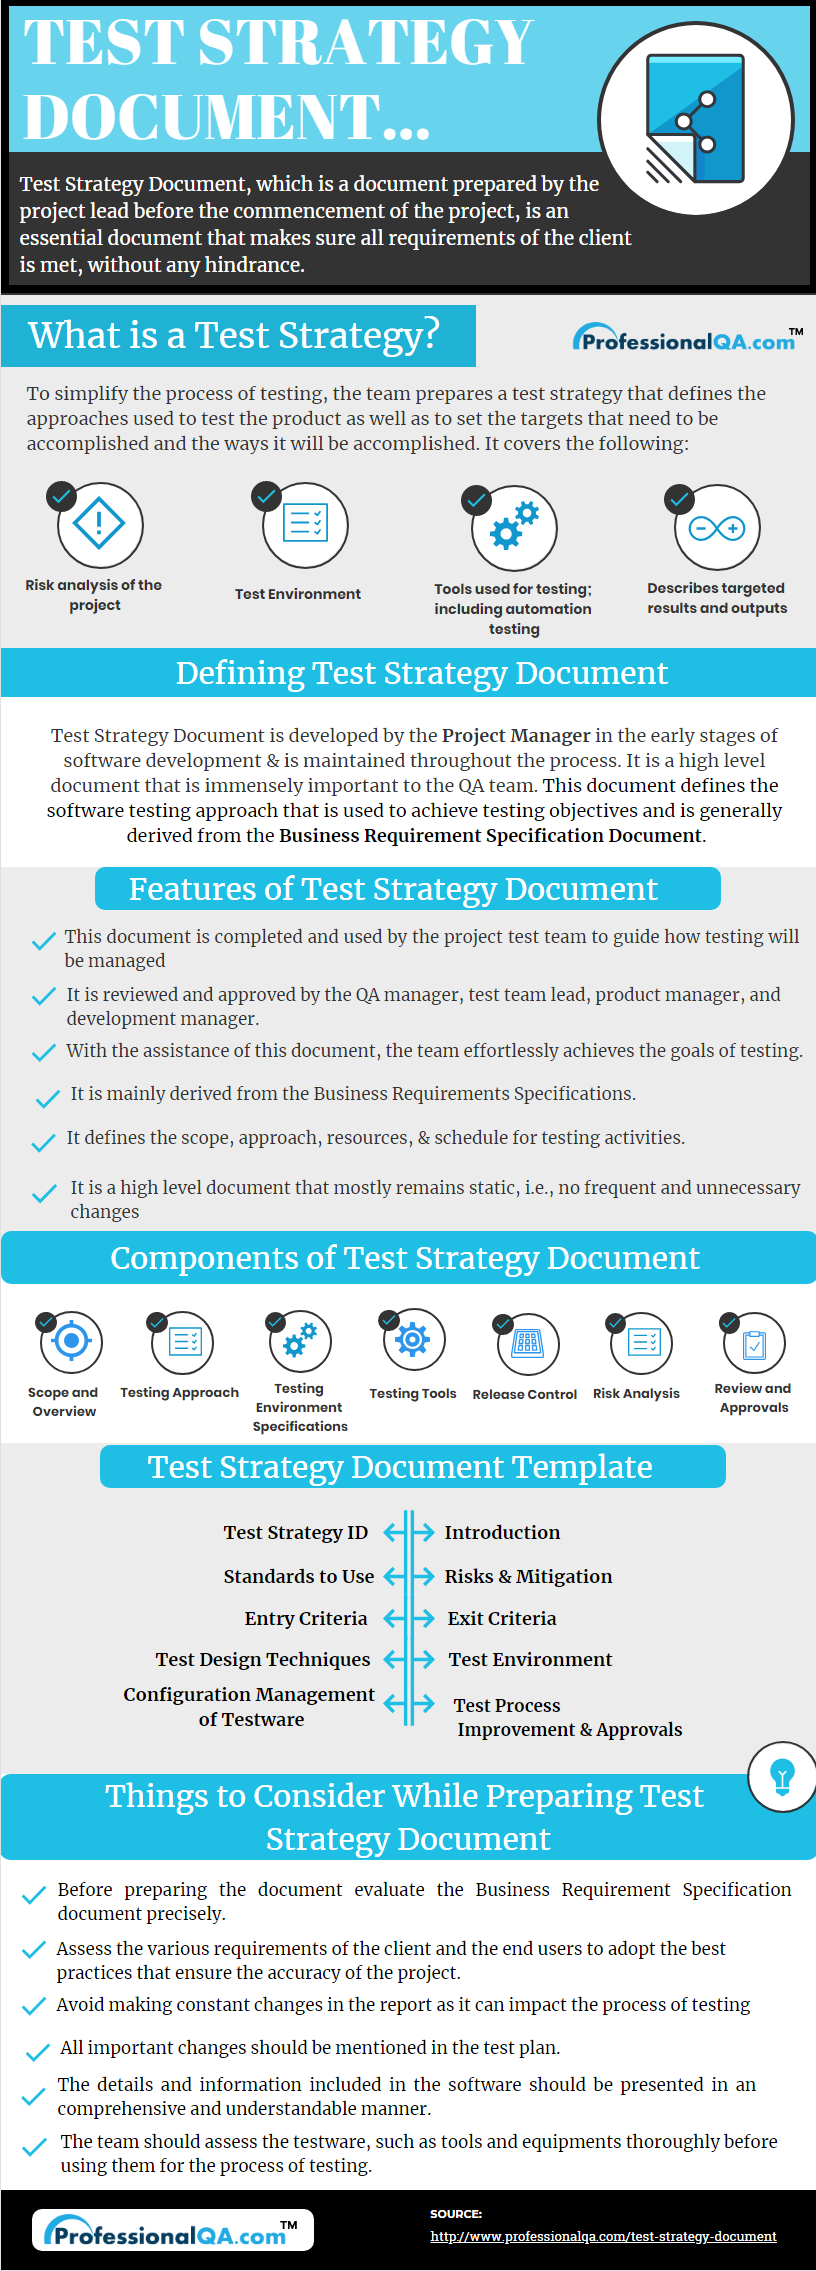 Test Strategy Document infographics